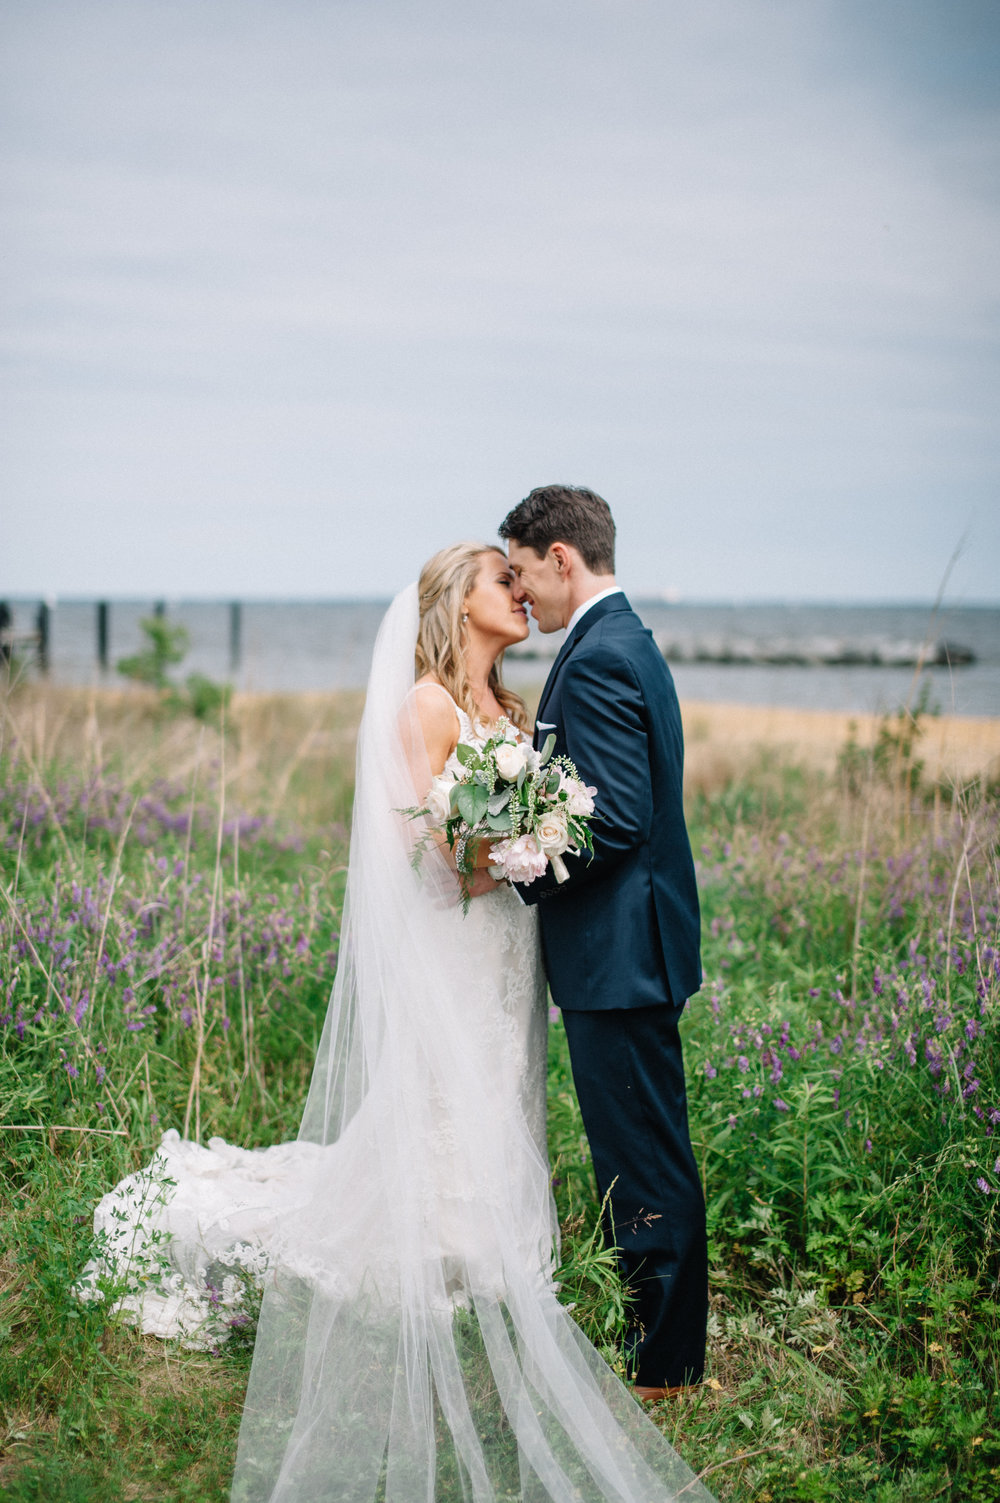 chesapeakebayfoundationweddingphotographersarahhouston-189.jpg